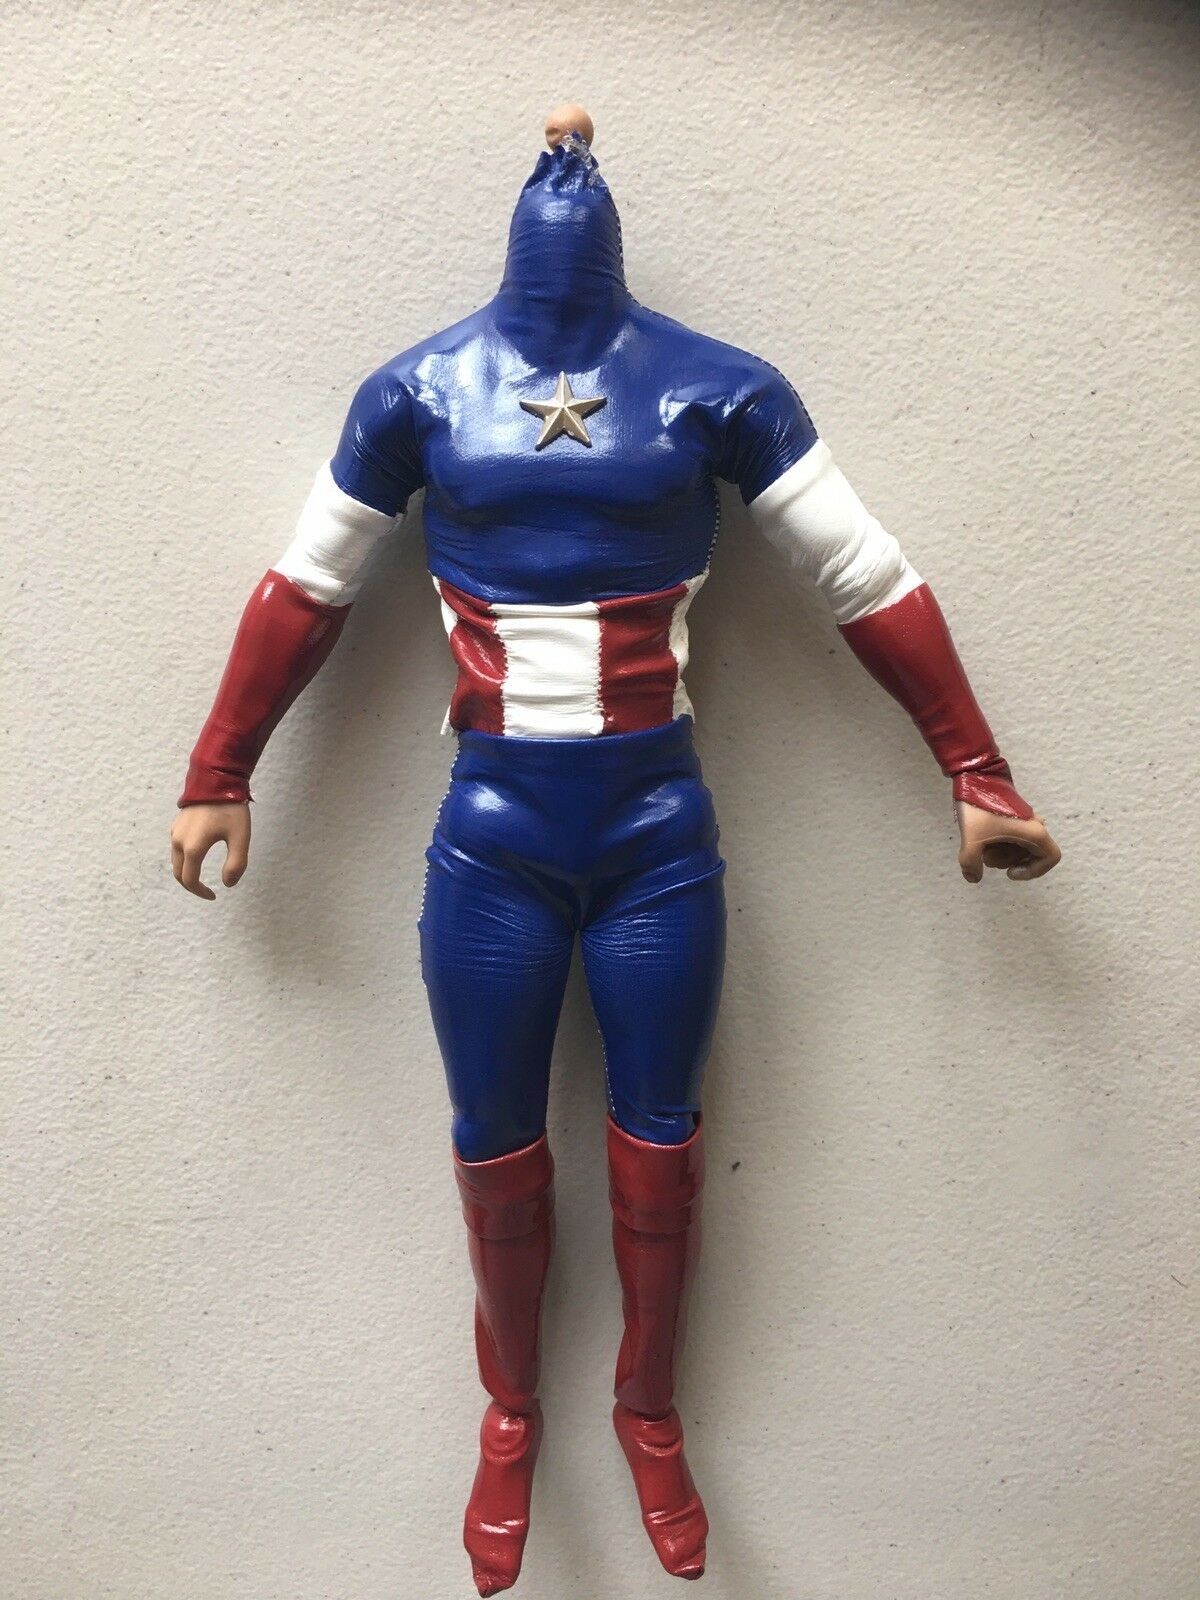 Captain america Custom 1:6 Scale Body And Suite